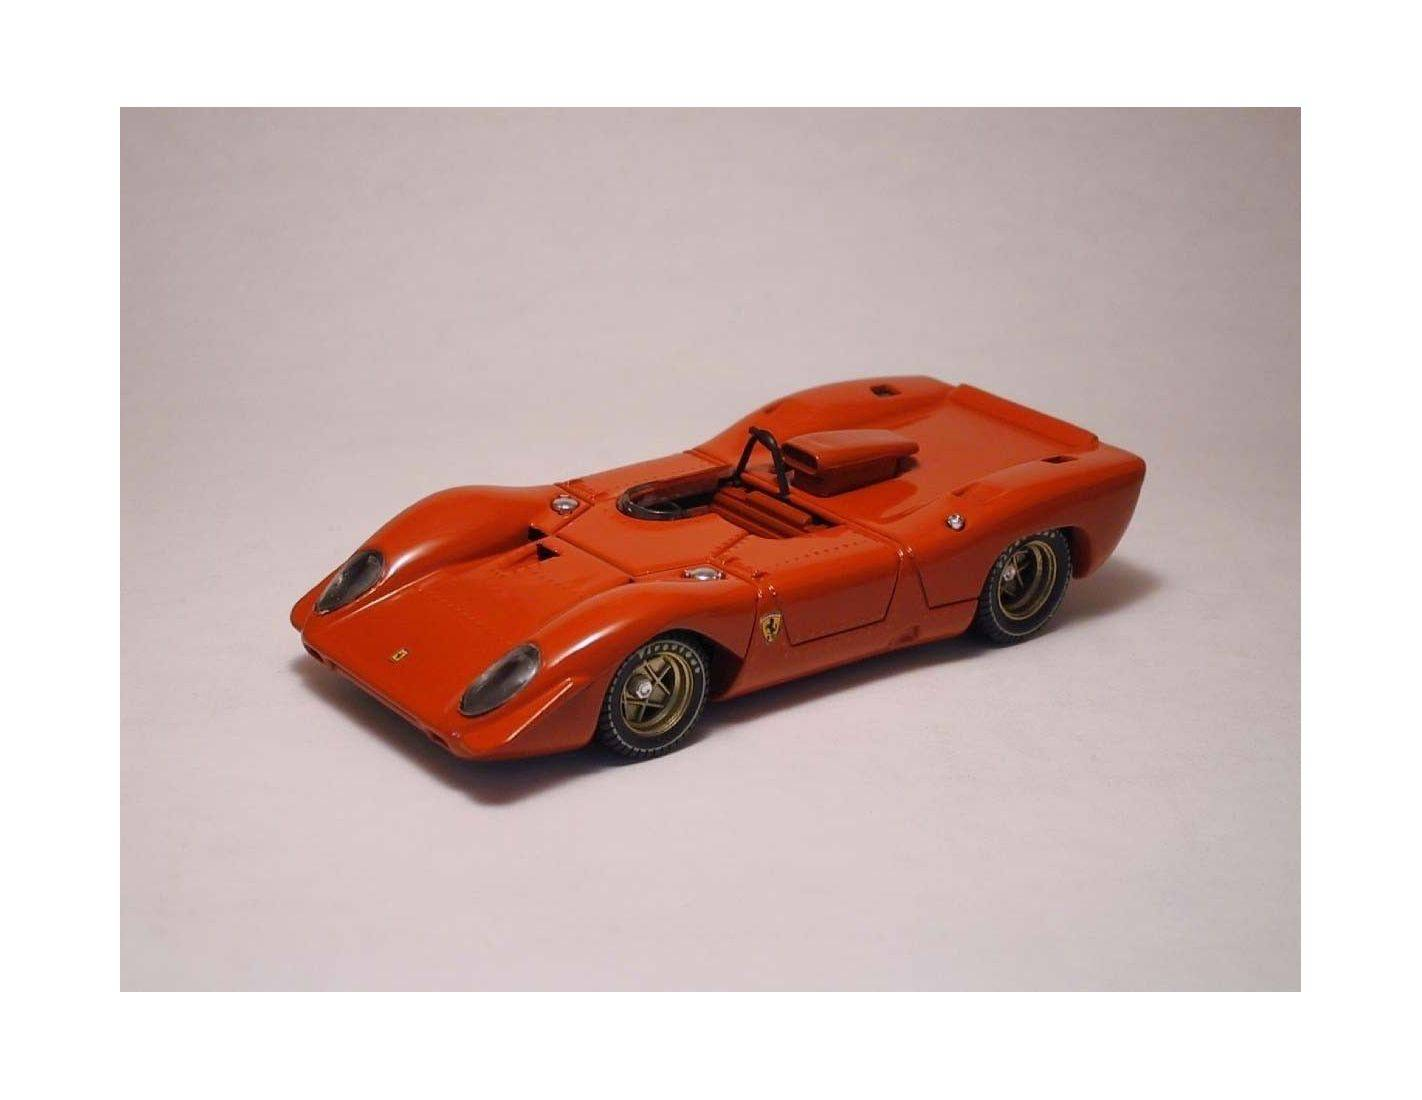 Best Model BT9220 FERRARI 312 P SPYDER 1969 PROVA RED 1:43 Modellino